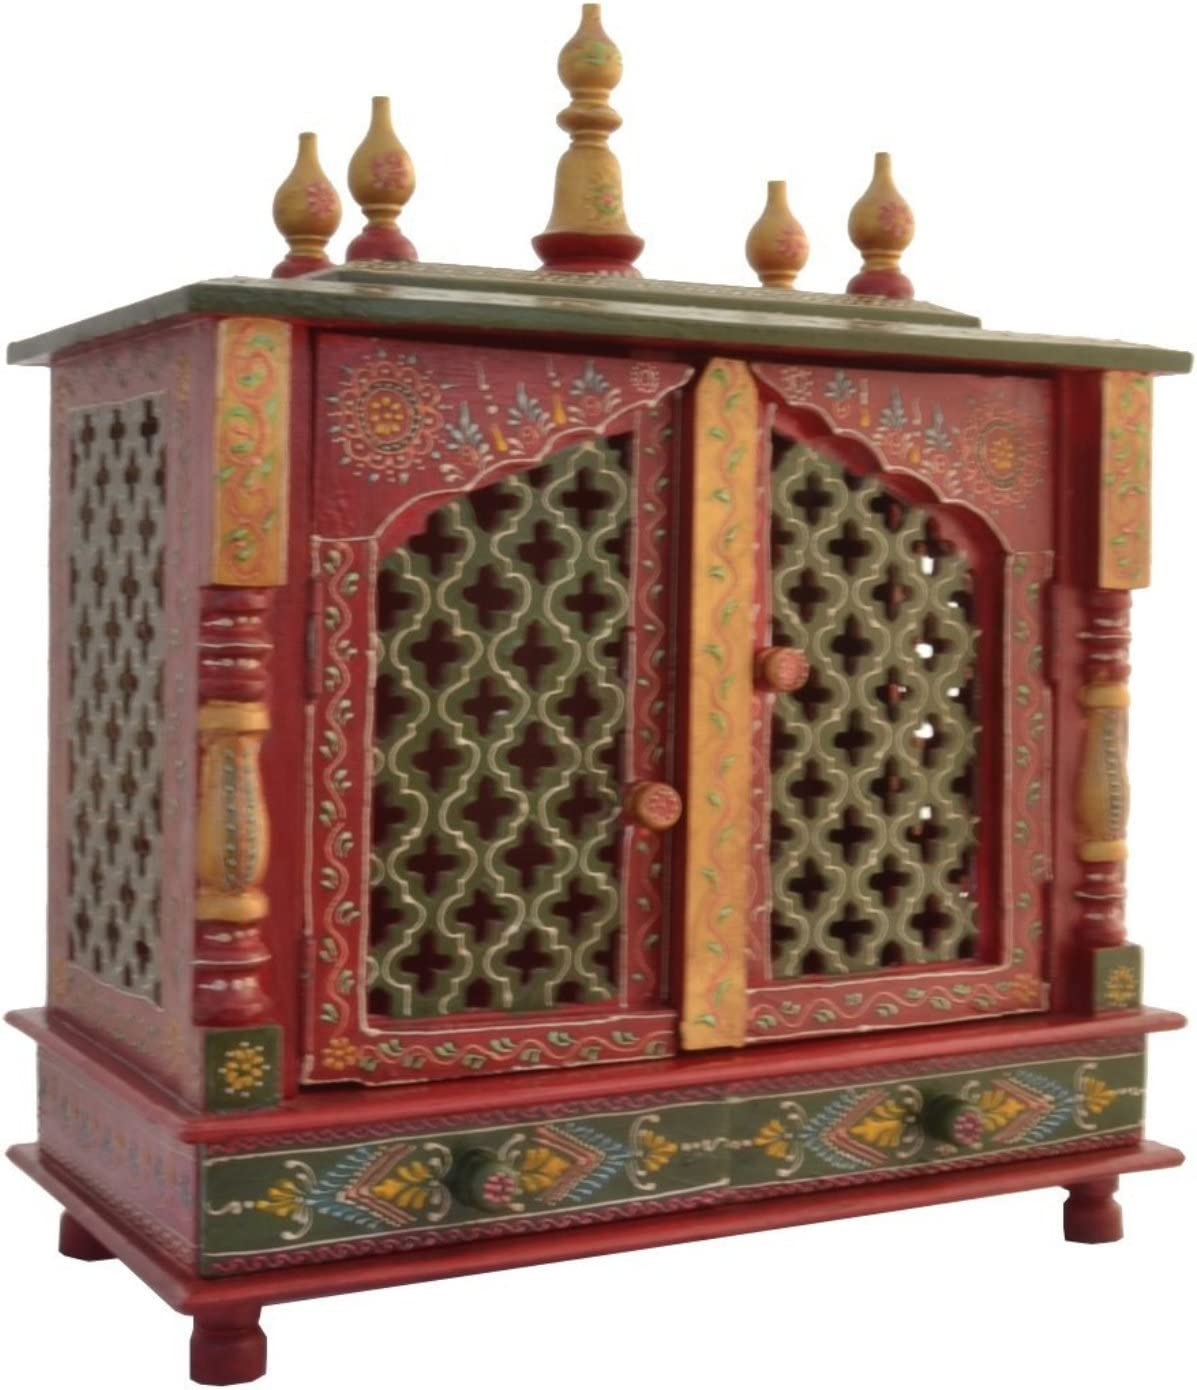 Jodhpur Handicrafts Wooden Temple/Home Temple/Pooja Mandir/Pooja Mandap/Temple for Home